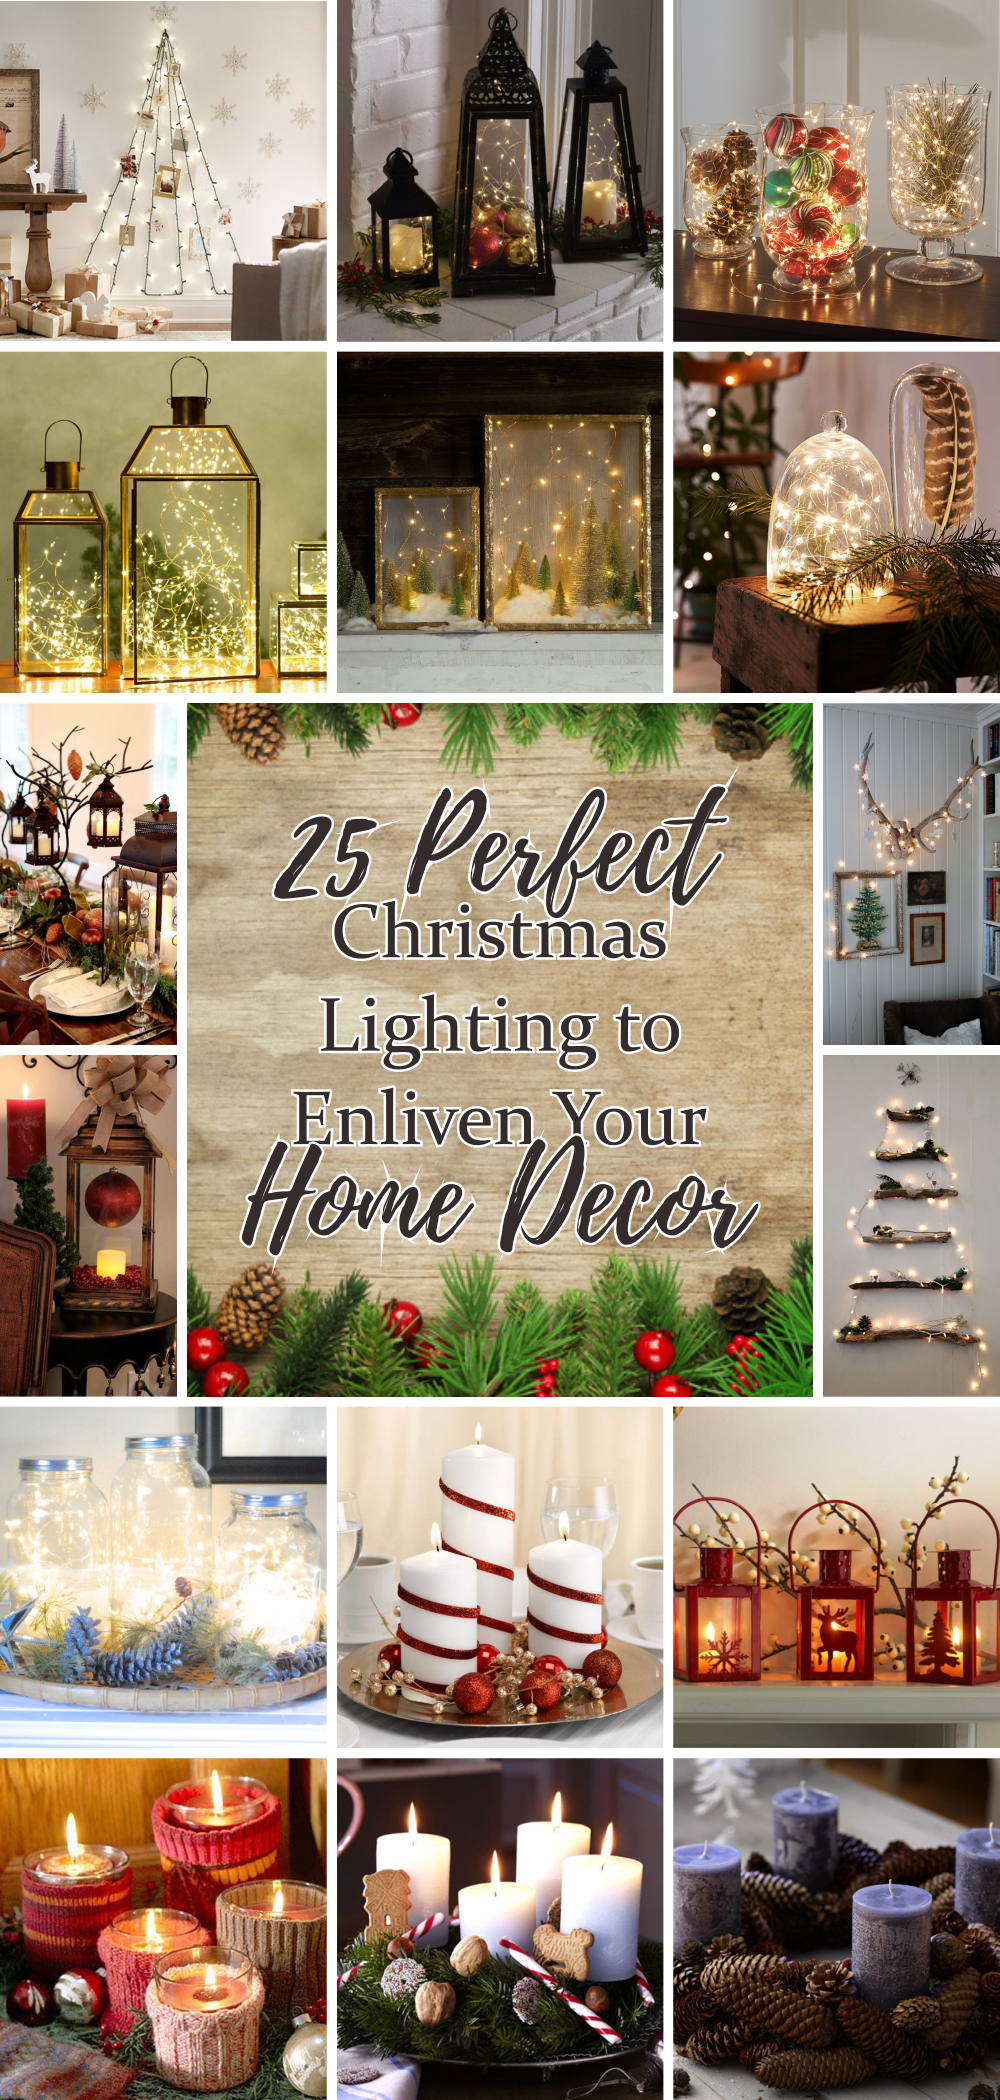 25 perfect christmas lighting to enliven your home decor 1